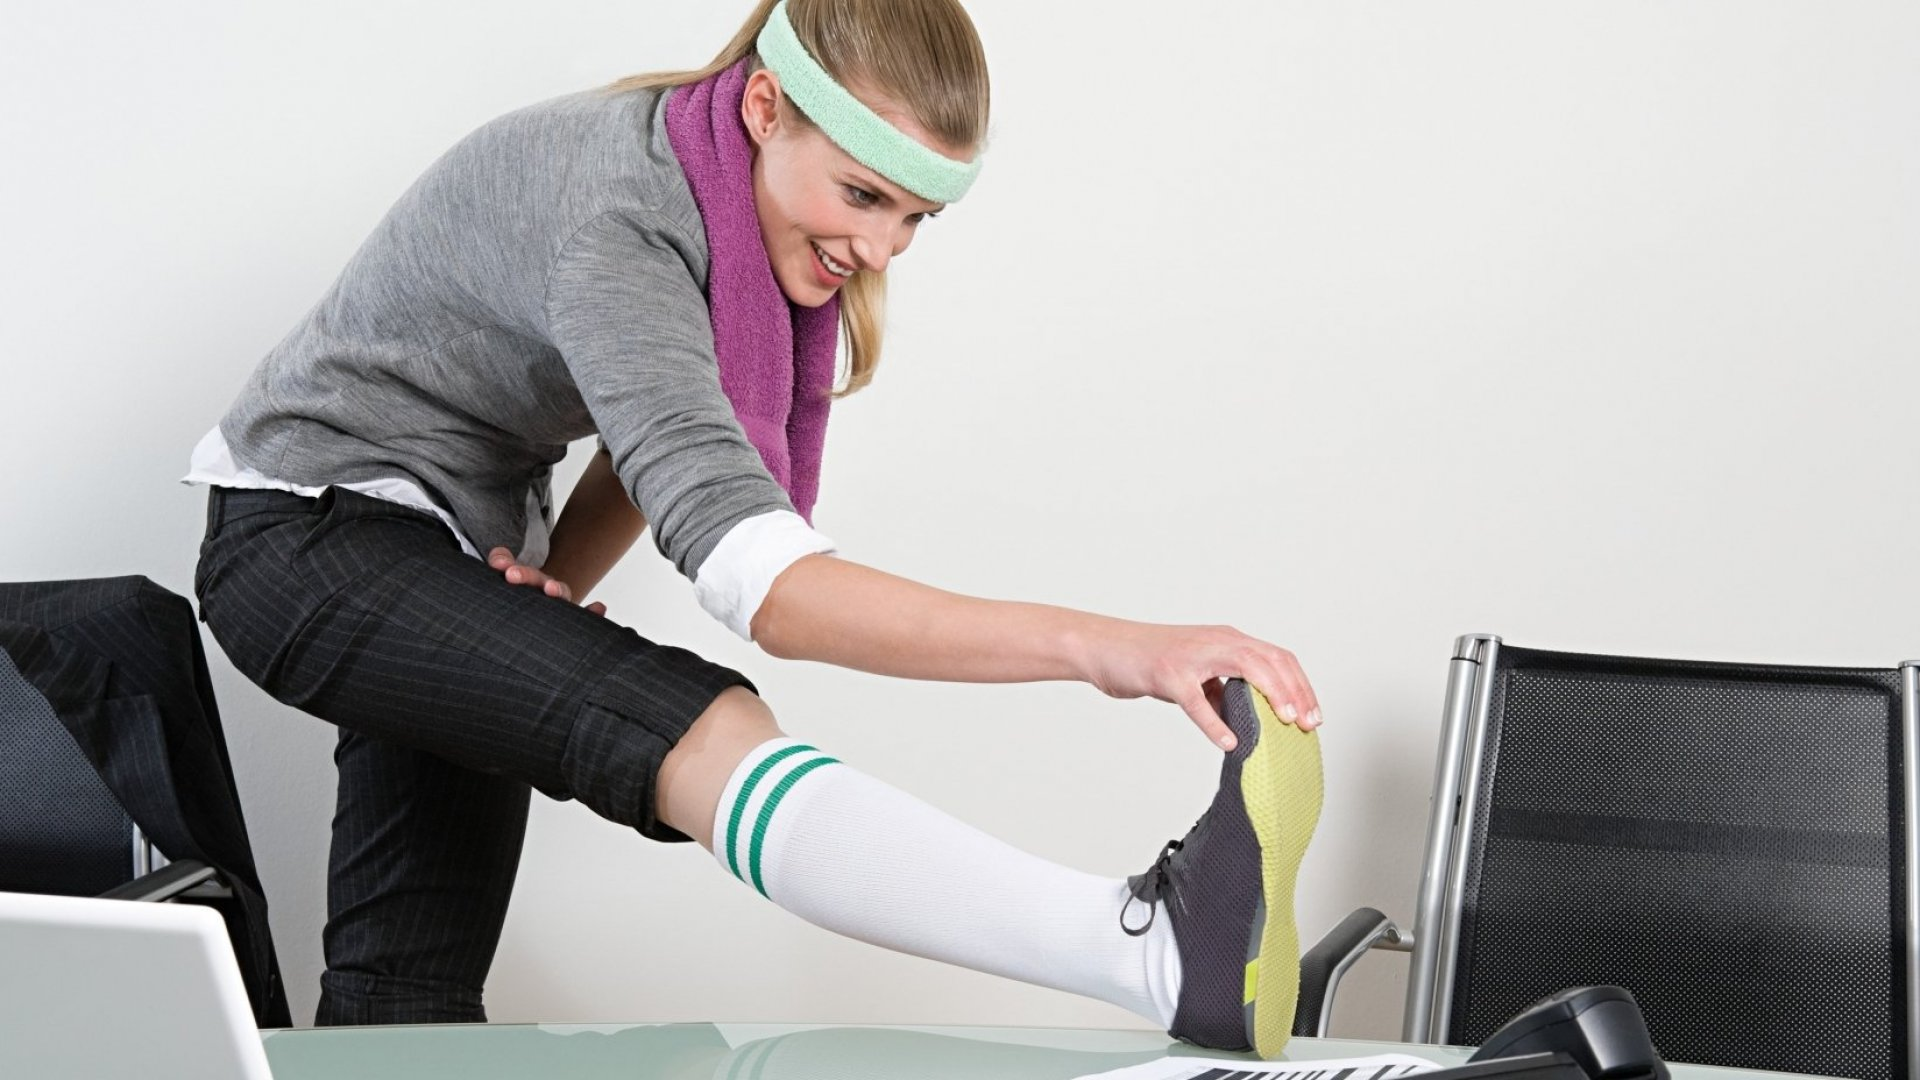 This 7-Minute Desk Workout Will Change Your (Work) Life